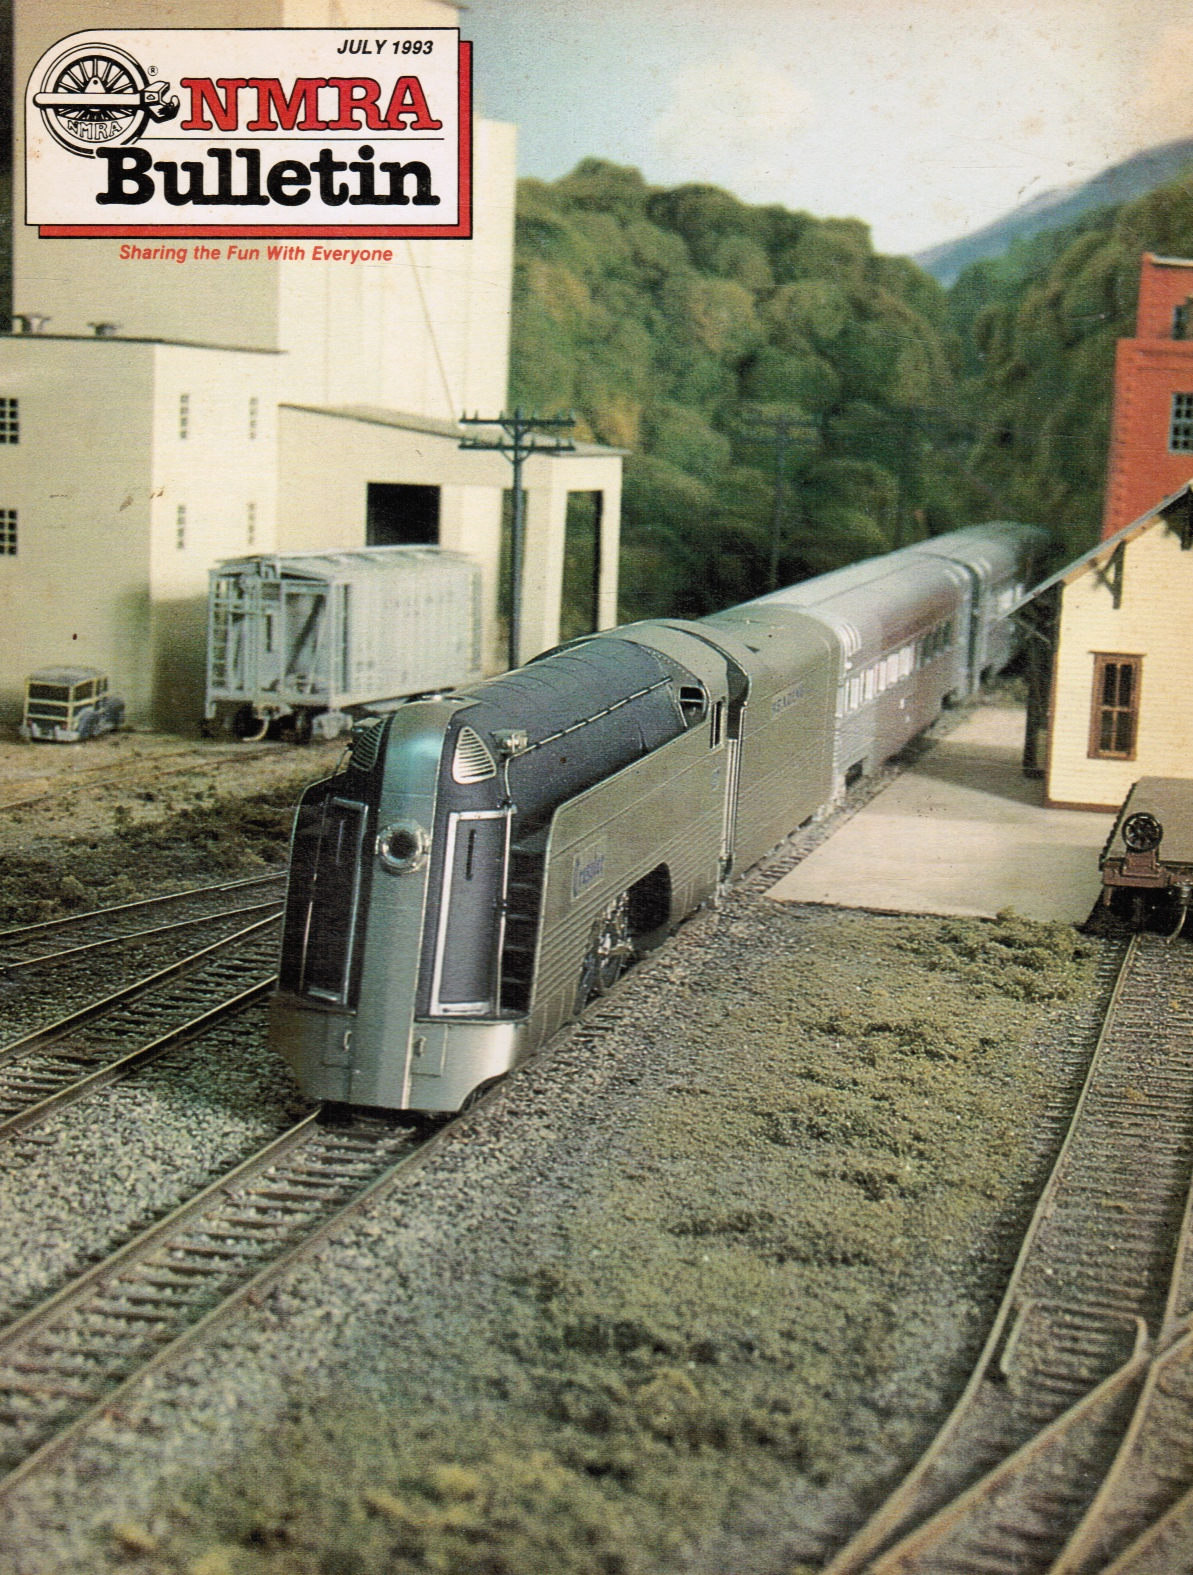 Image for NMRA [National Model Railroad Association] Bulletin, Vol 59, No 11 July 1993 1992 Periodical Index